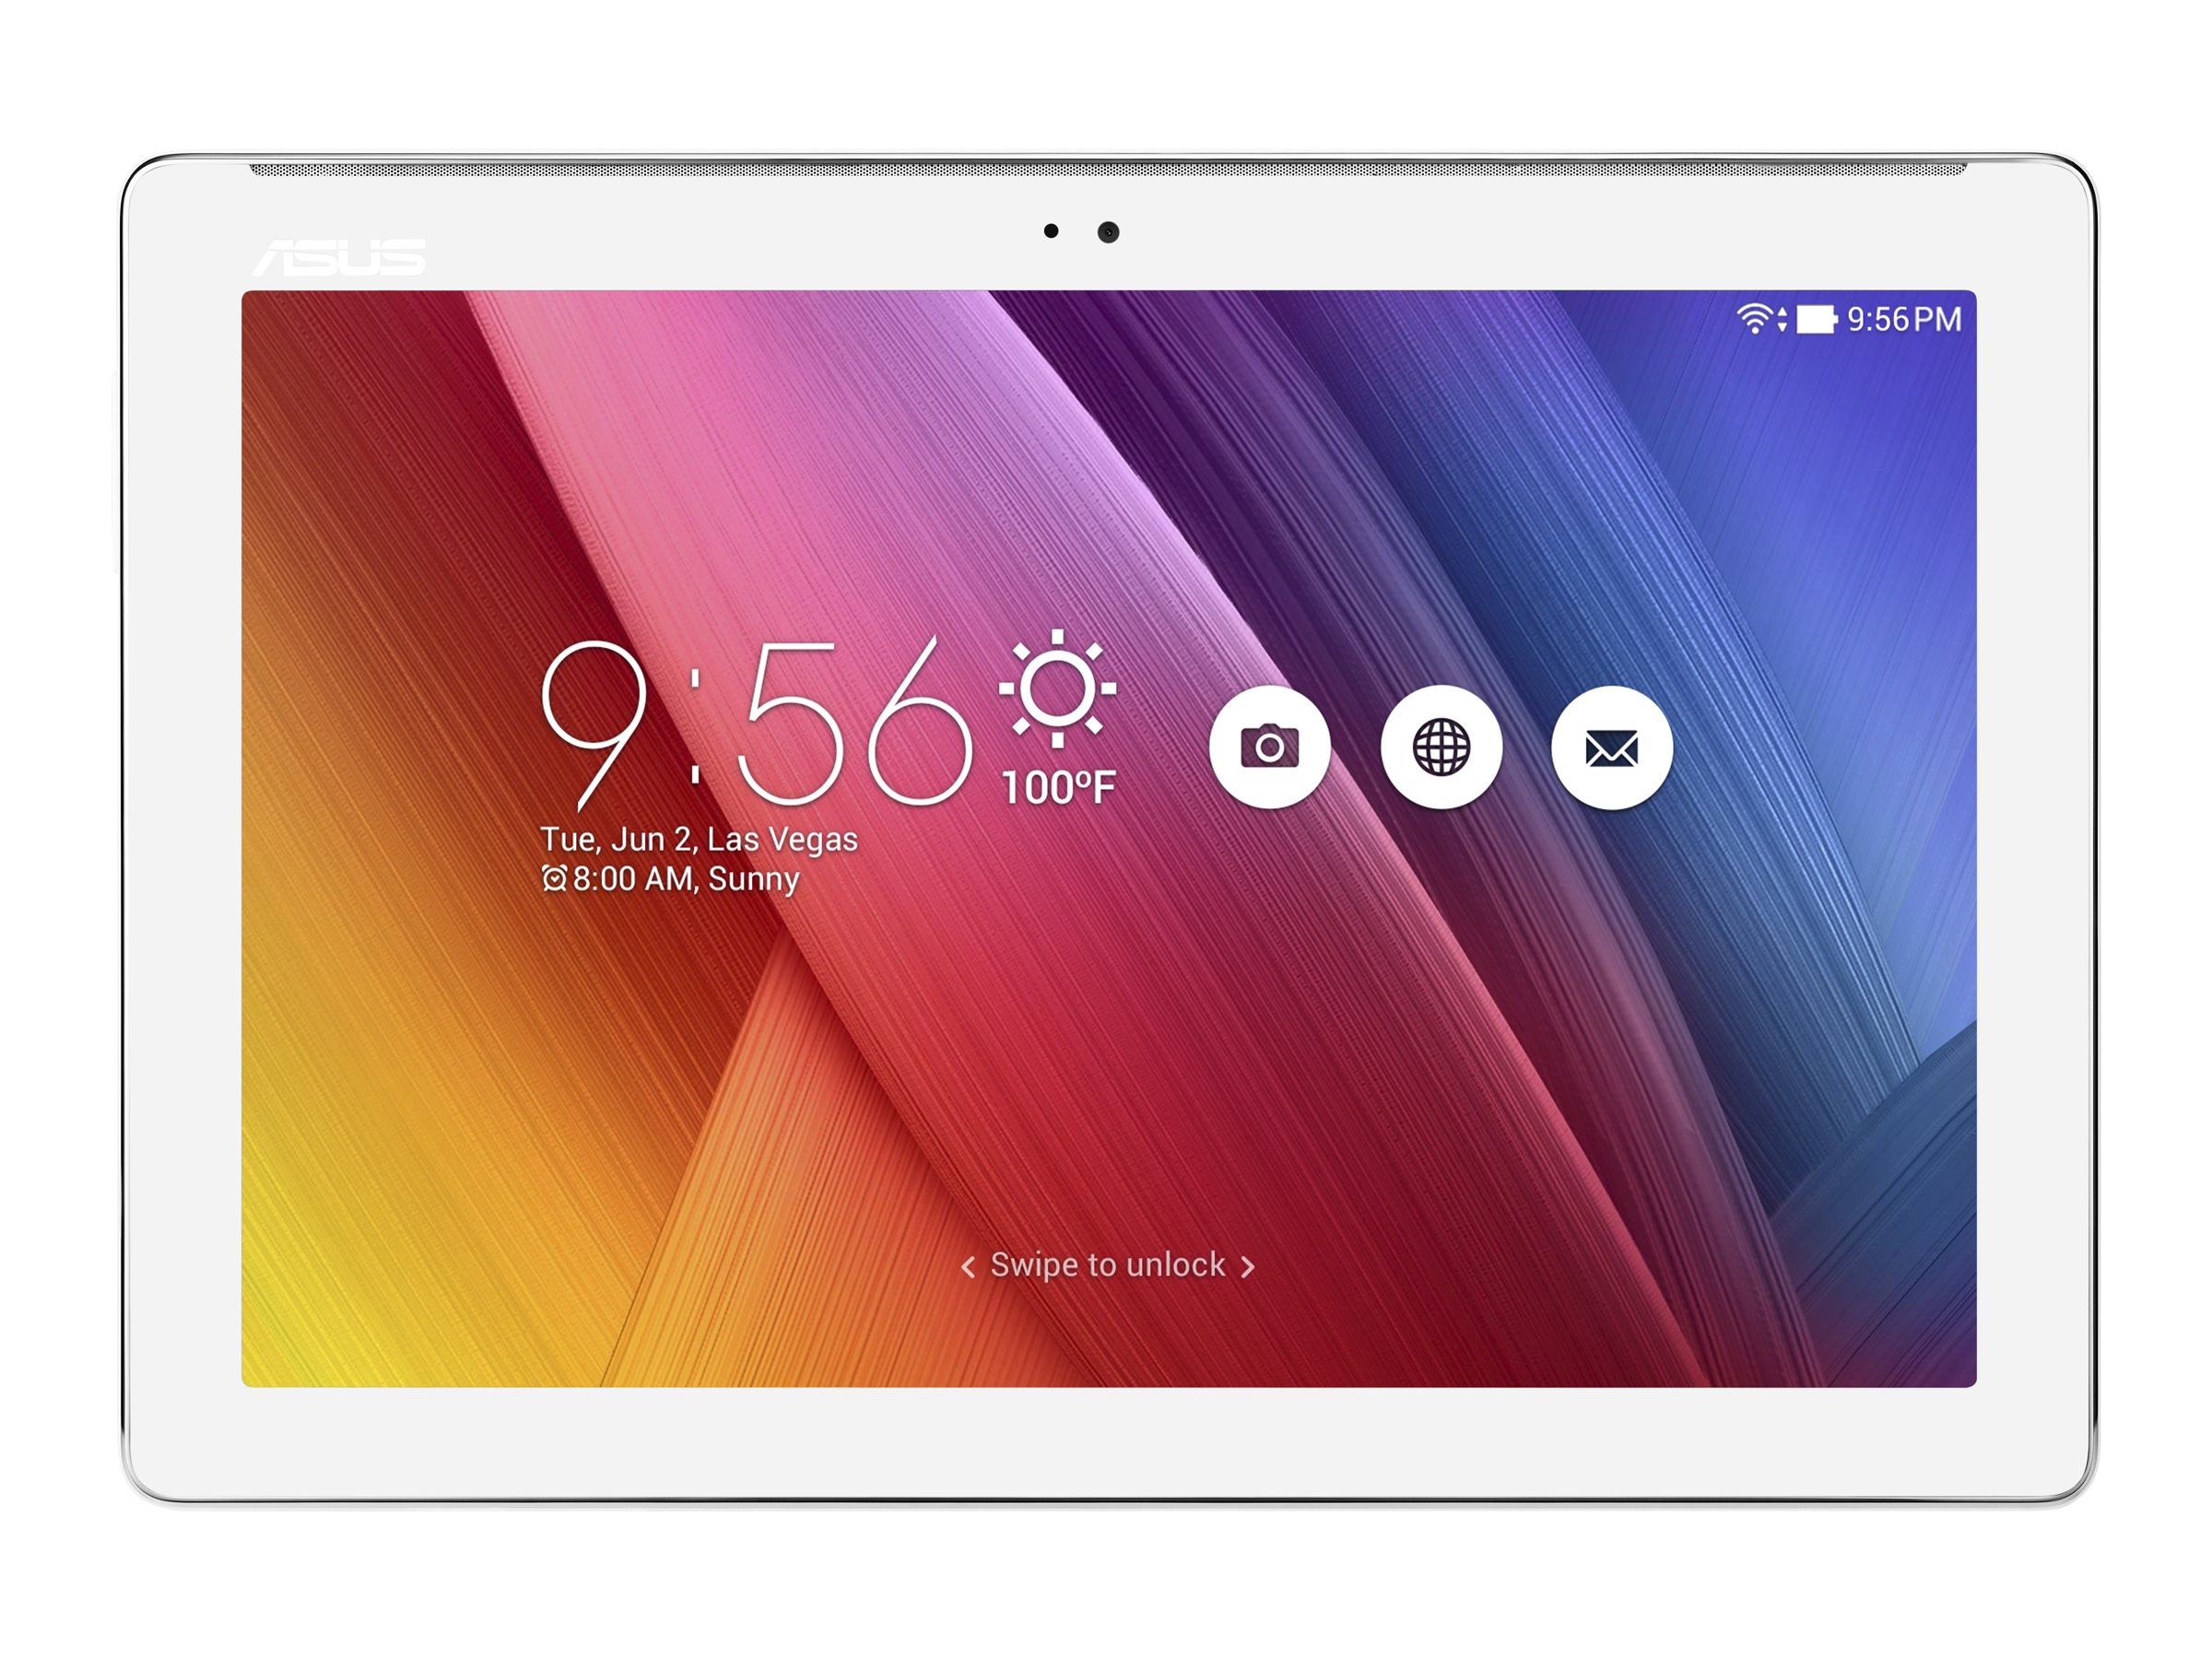 ASUS ZenPad 10 Z300M - Tablet - Android 6.0 (Marshmallow) - 64 GB - 25.65 cm (10.1